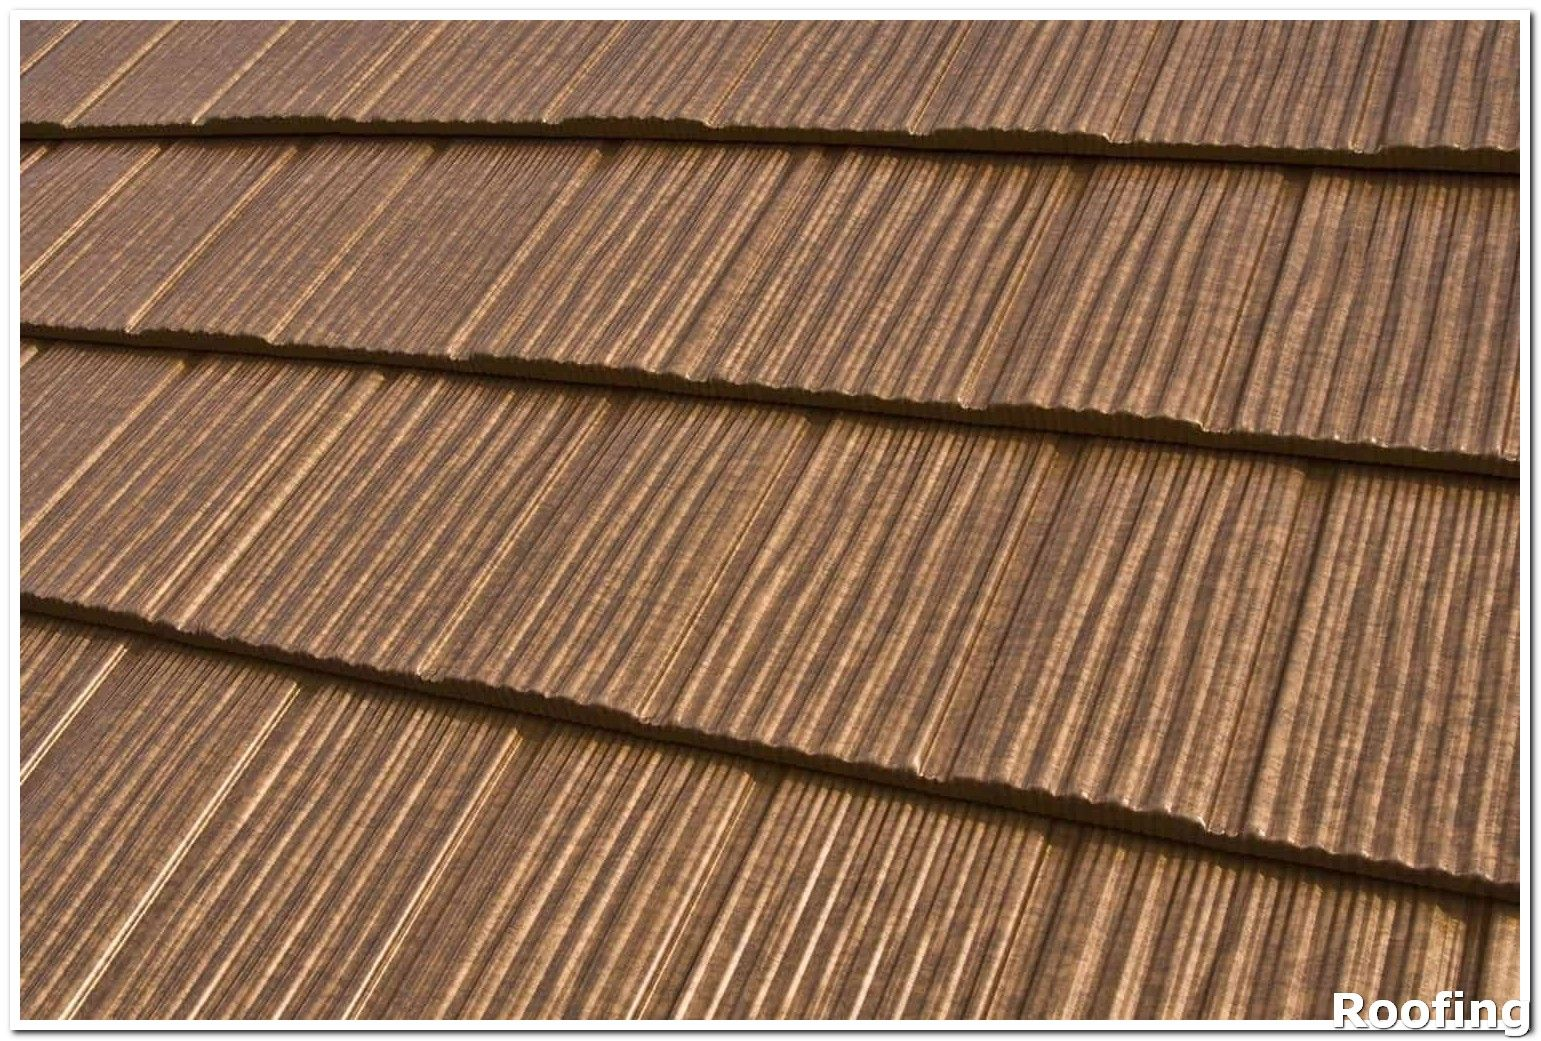 Roofing Tips Carefully Check The Written Estimate That You Are Given By A Professional Roofer Make Sure To Do Metal Roofing Systems Metal Roof Cool Roof